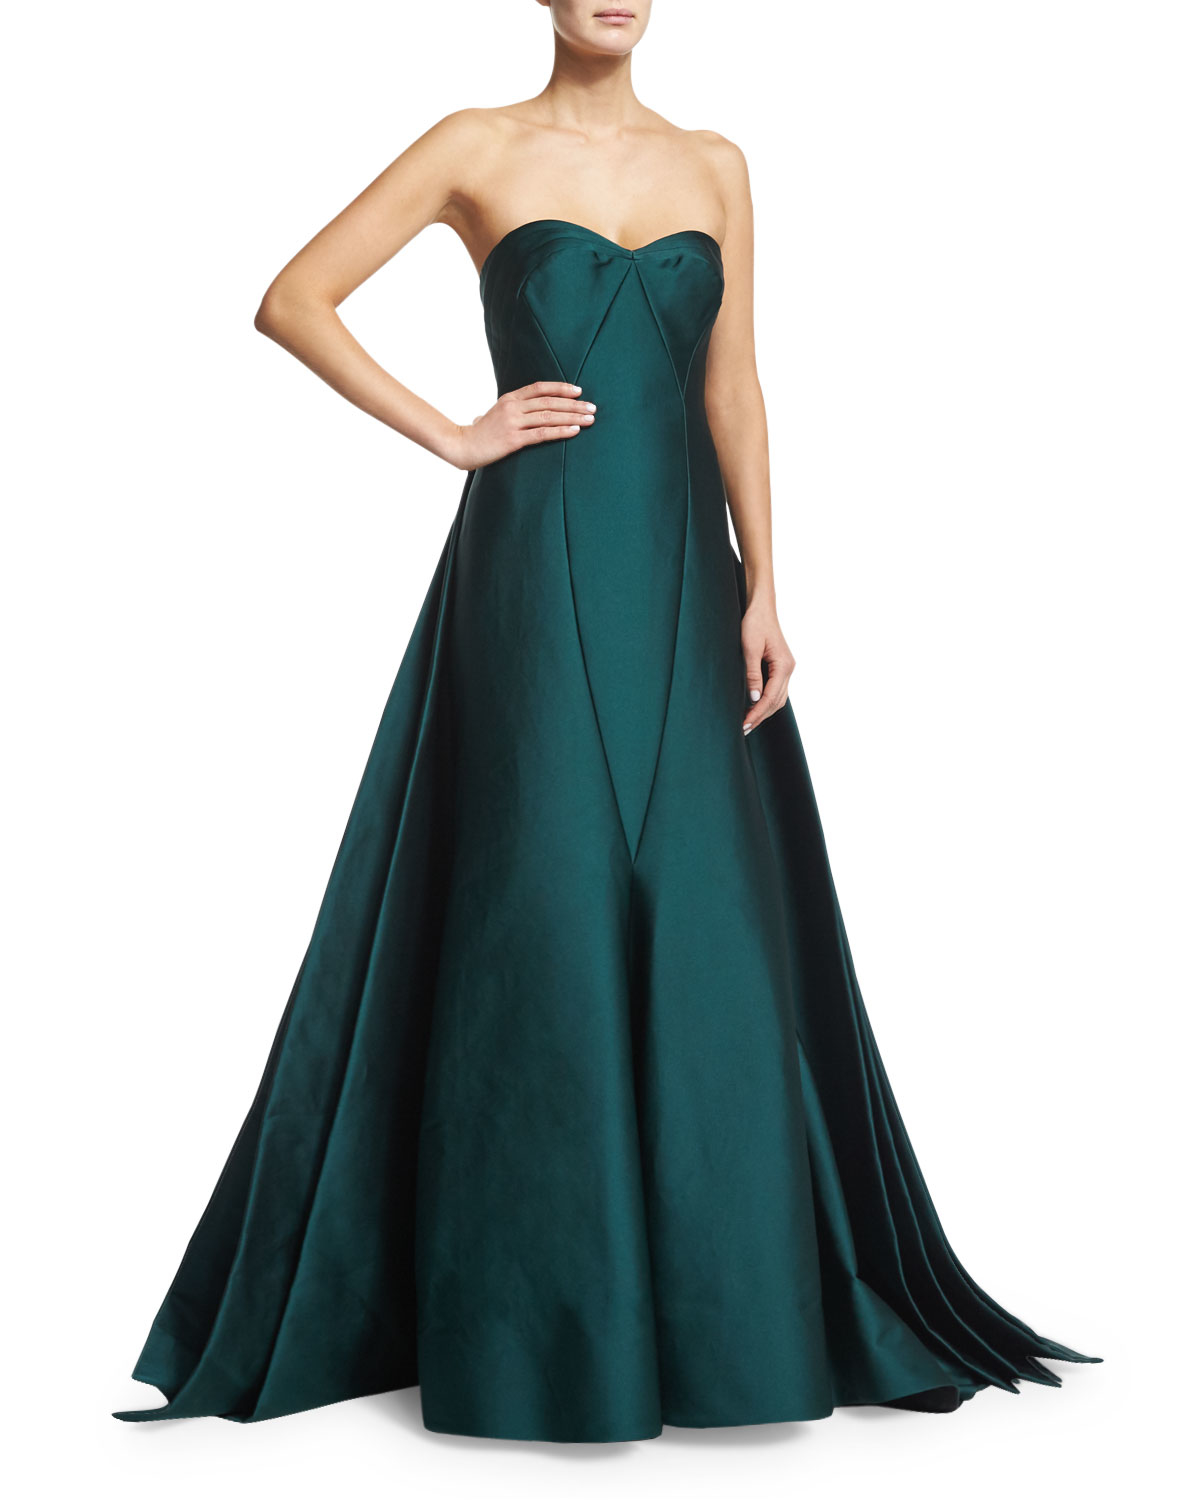 Lyst - Zac Posen Strapless Satin Ball Gown in Green